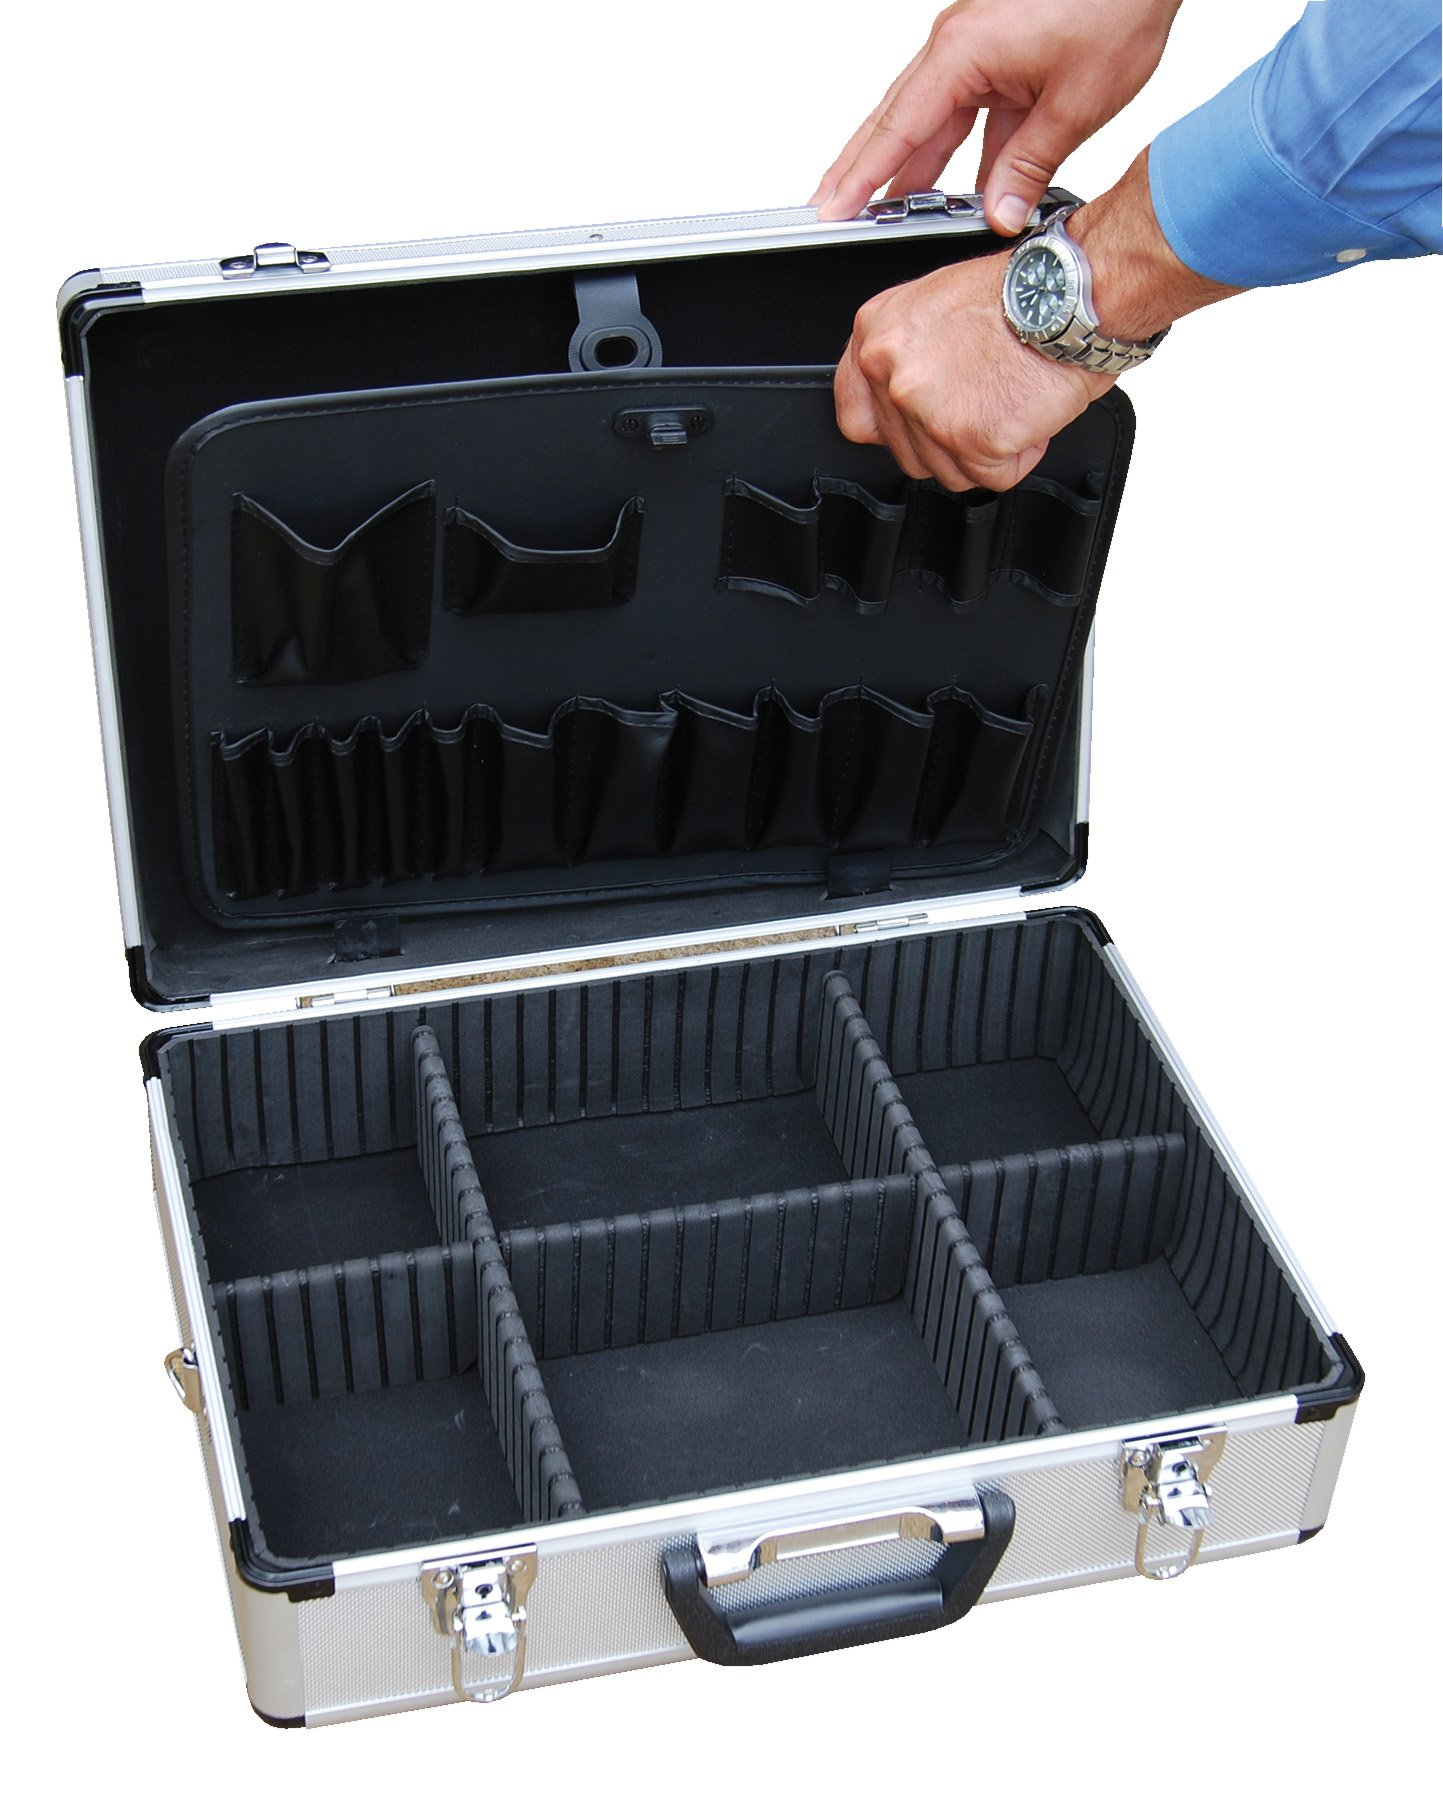 Vestil CASE-1814 Rugged Textured Carrying Case with Rounded Corners. 18'' Length, 14'' Width, 6'' Height by Vestil (Image #3)